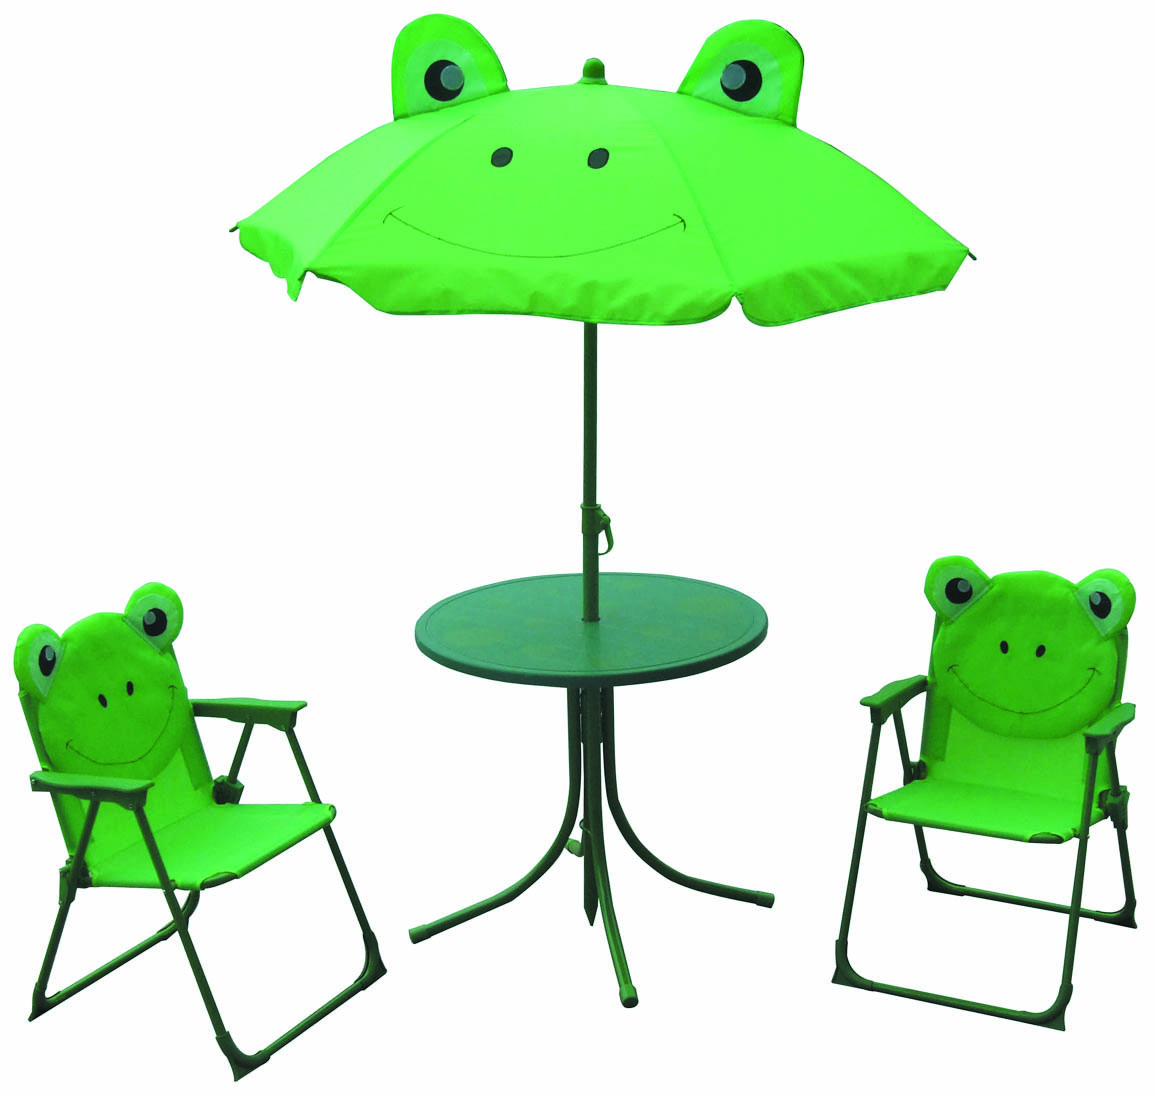 Hot Ing Kids Folding Chair Umbrella And Table Used For Garden Beach